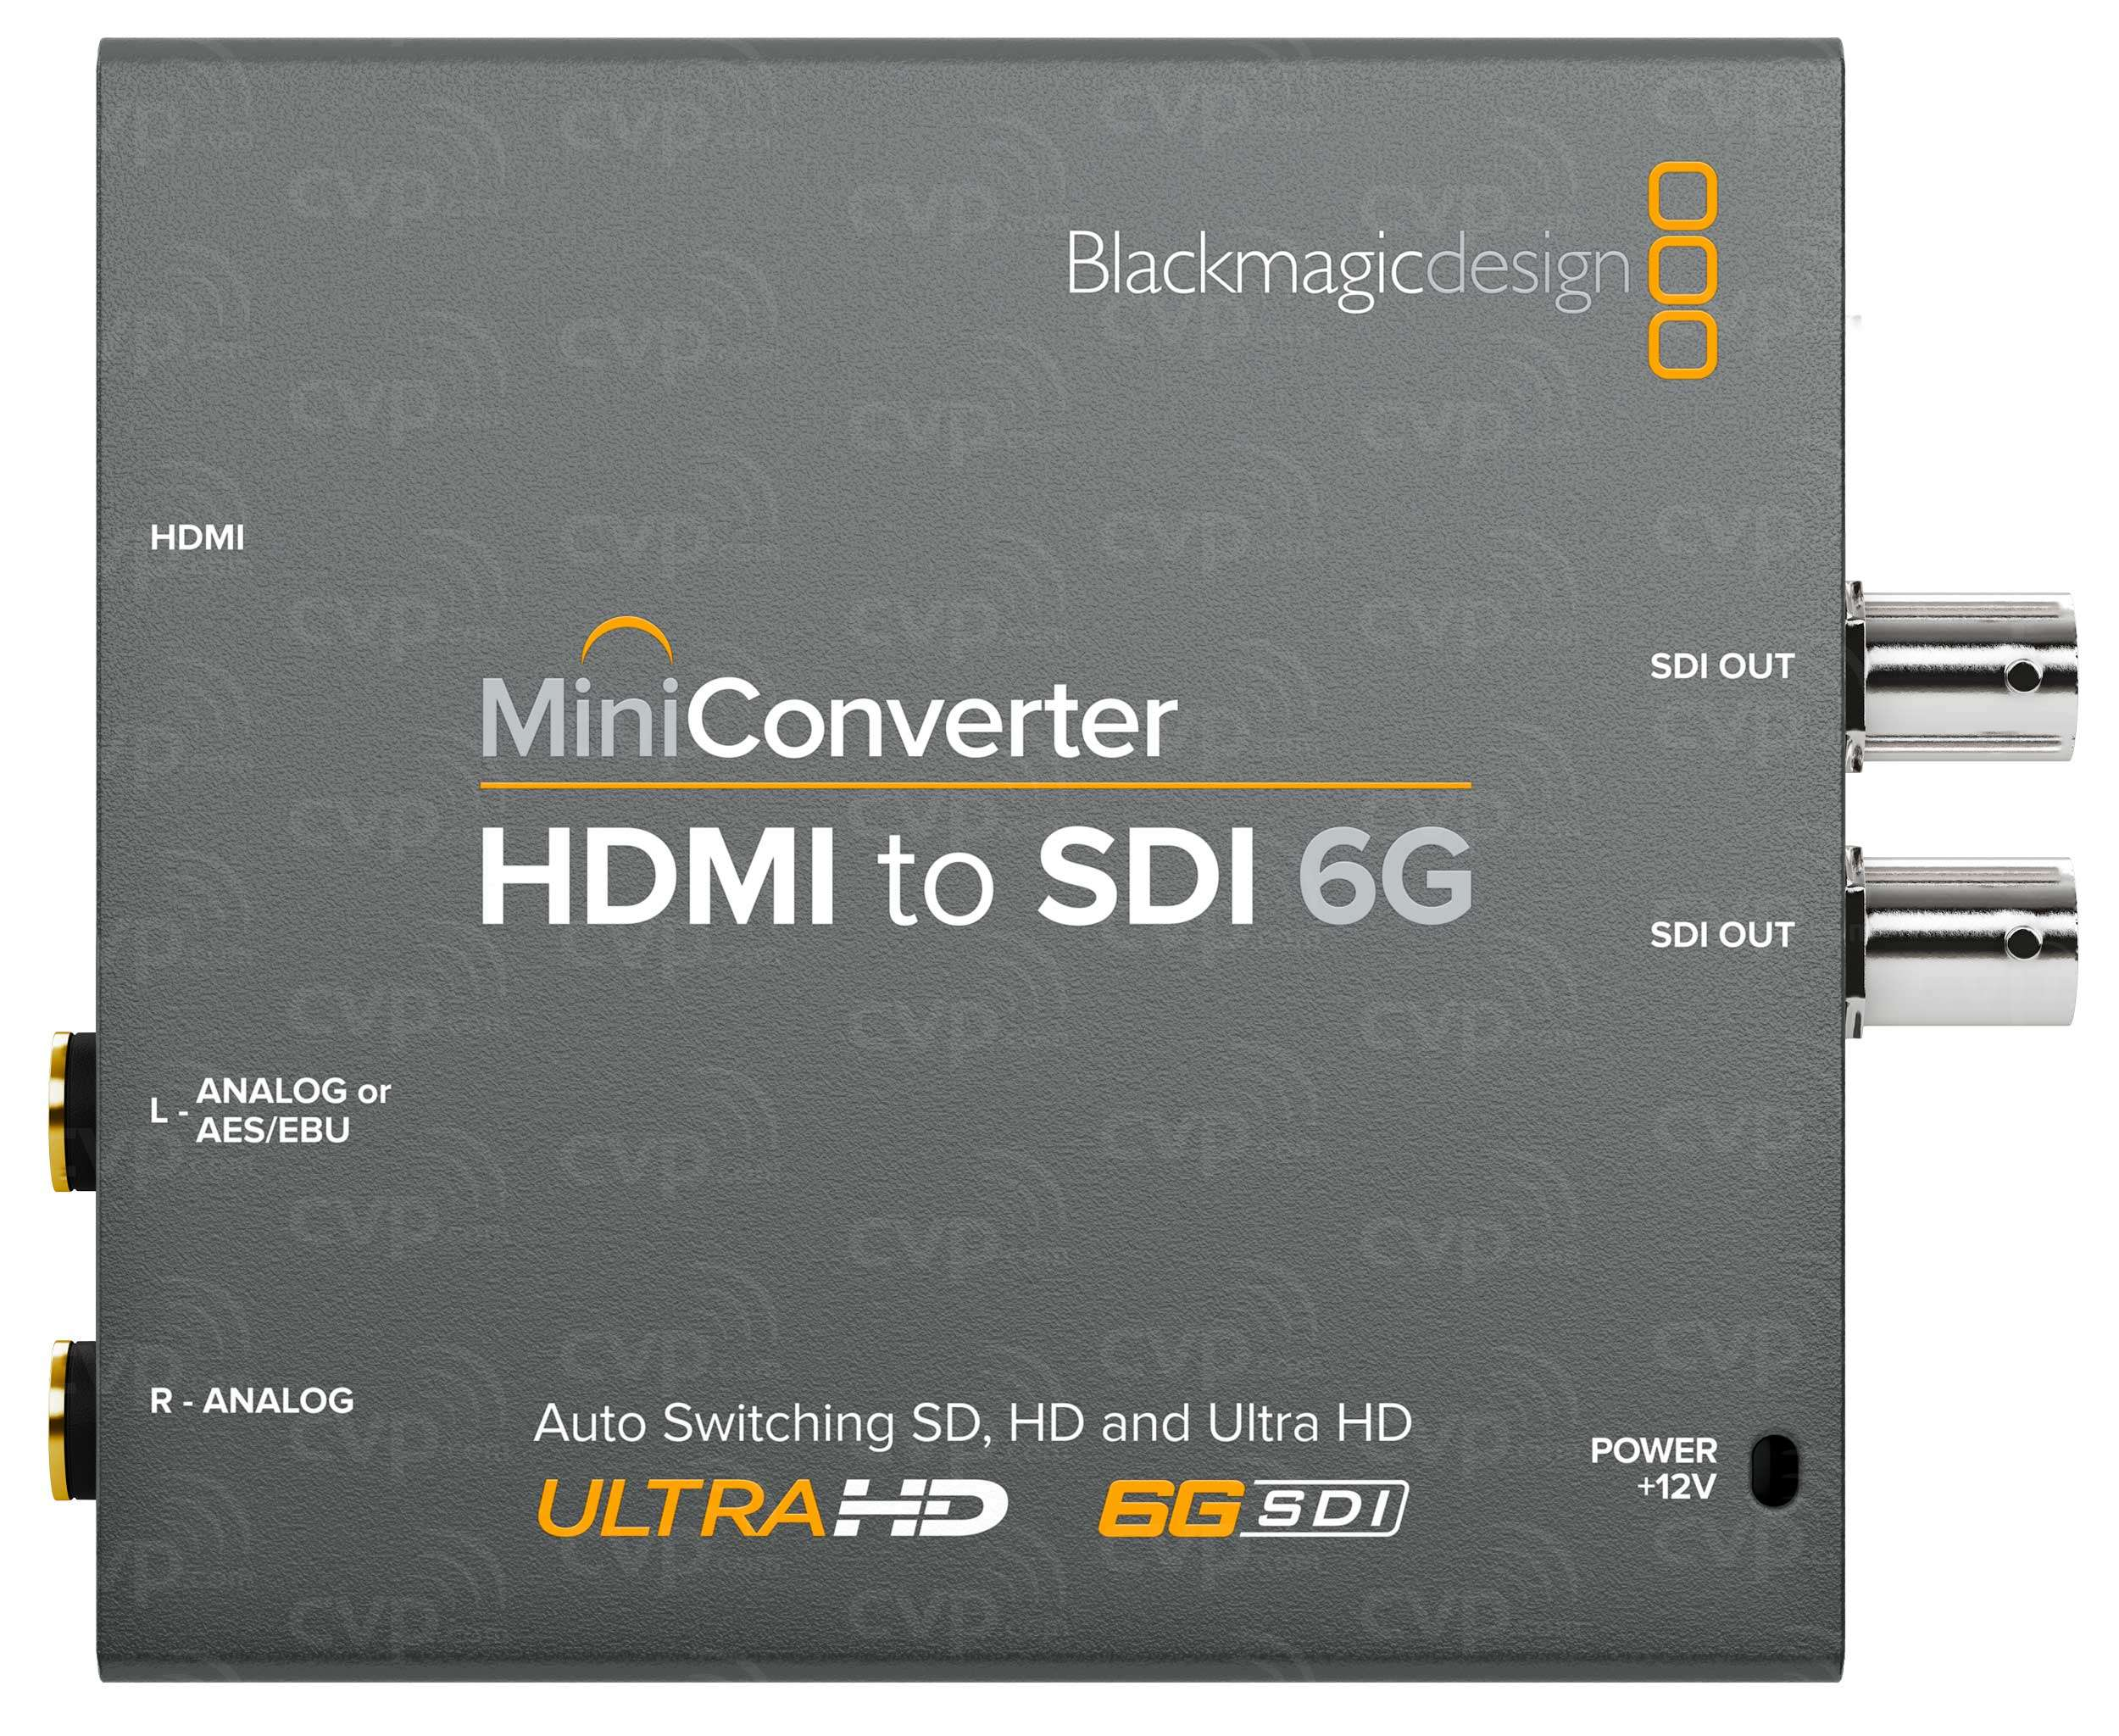 Buy Hdmi Blackmagic Mini Converter Hdmi To Sdi